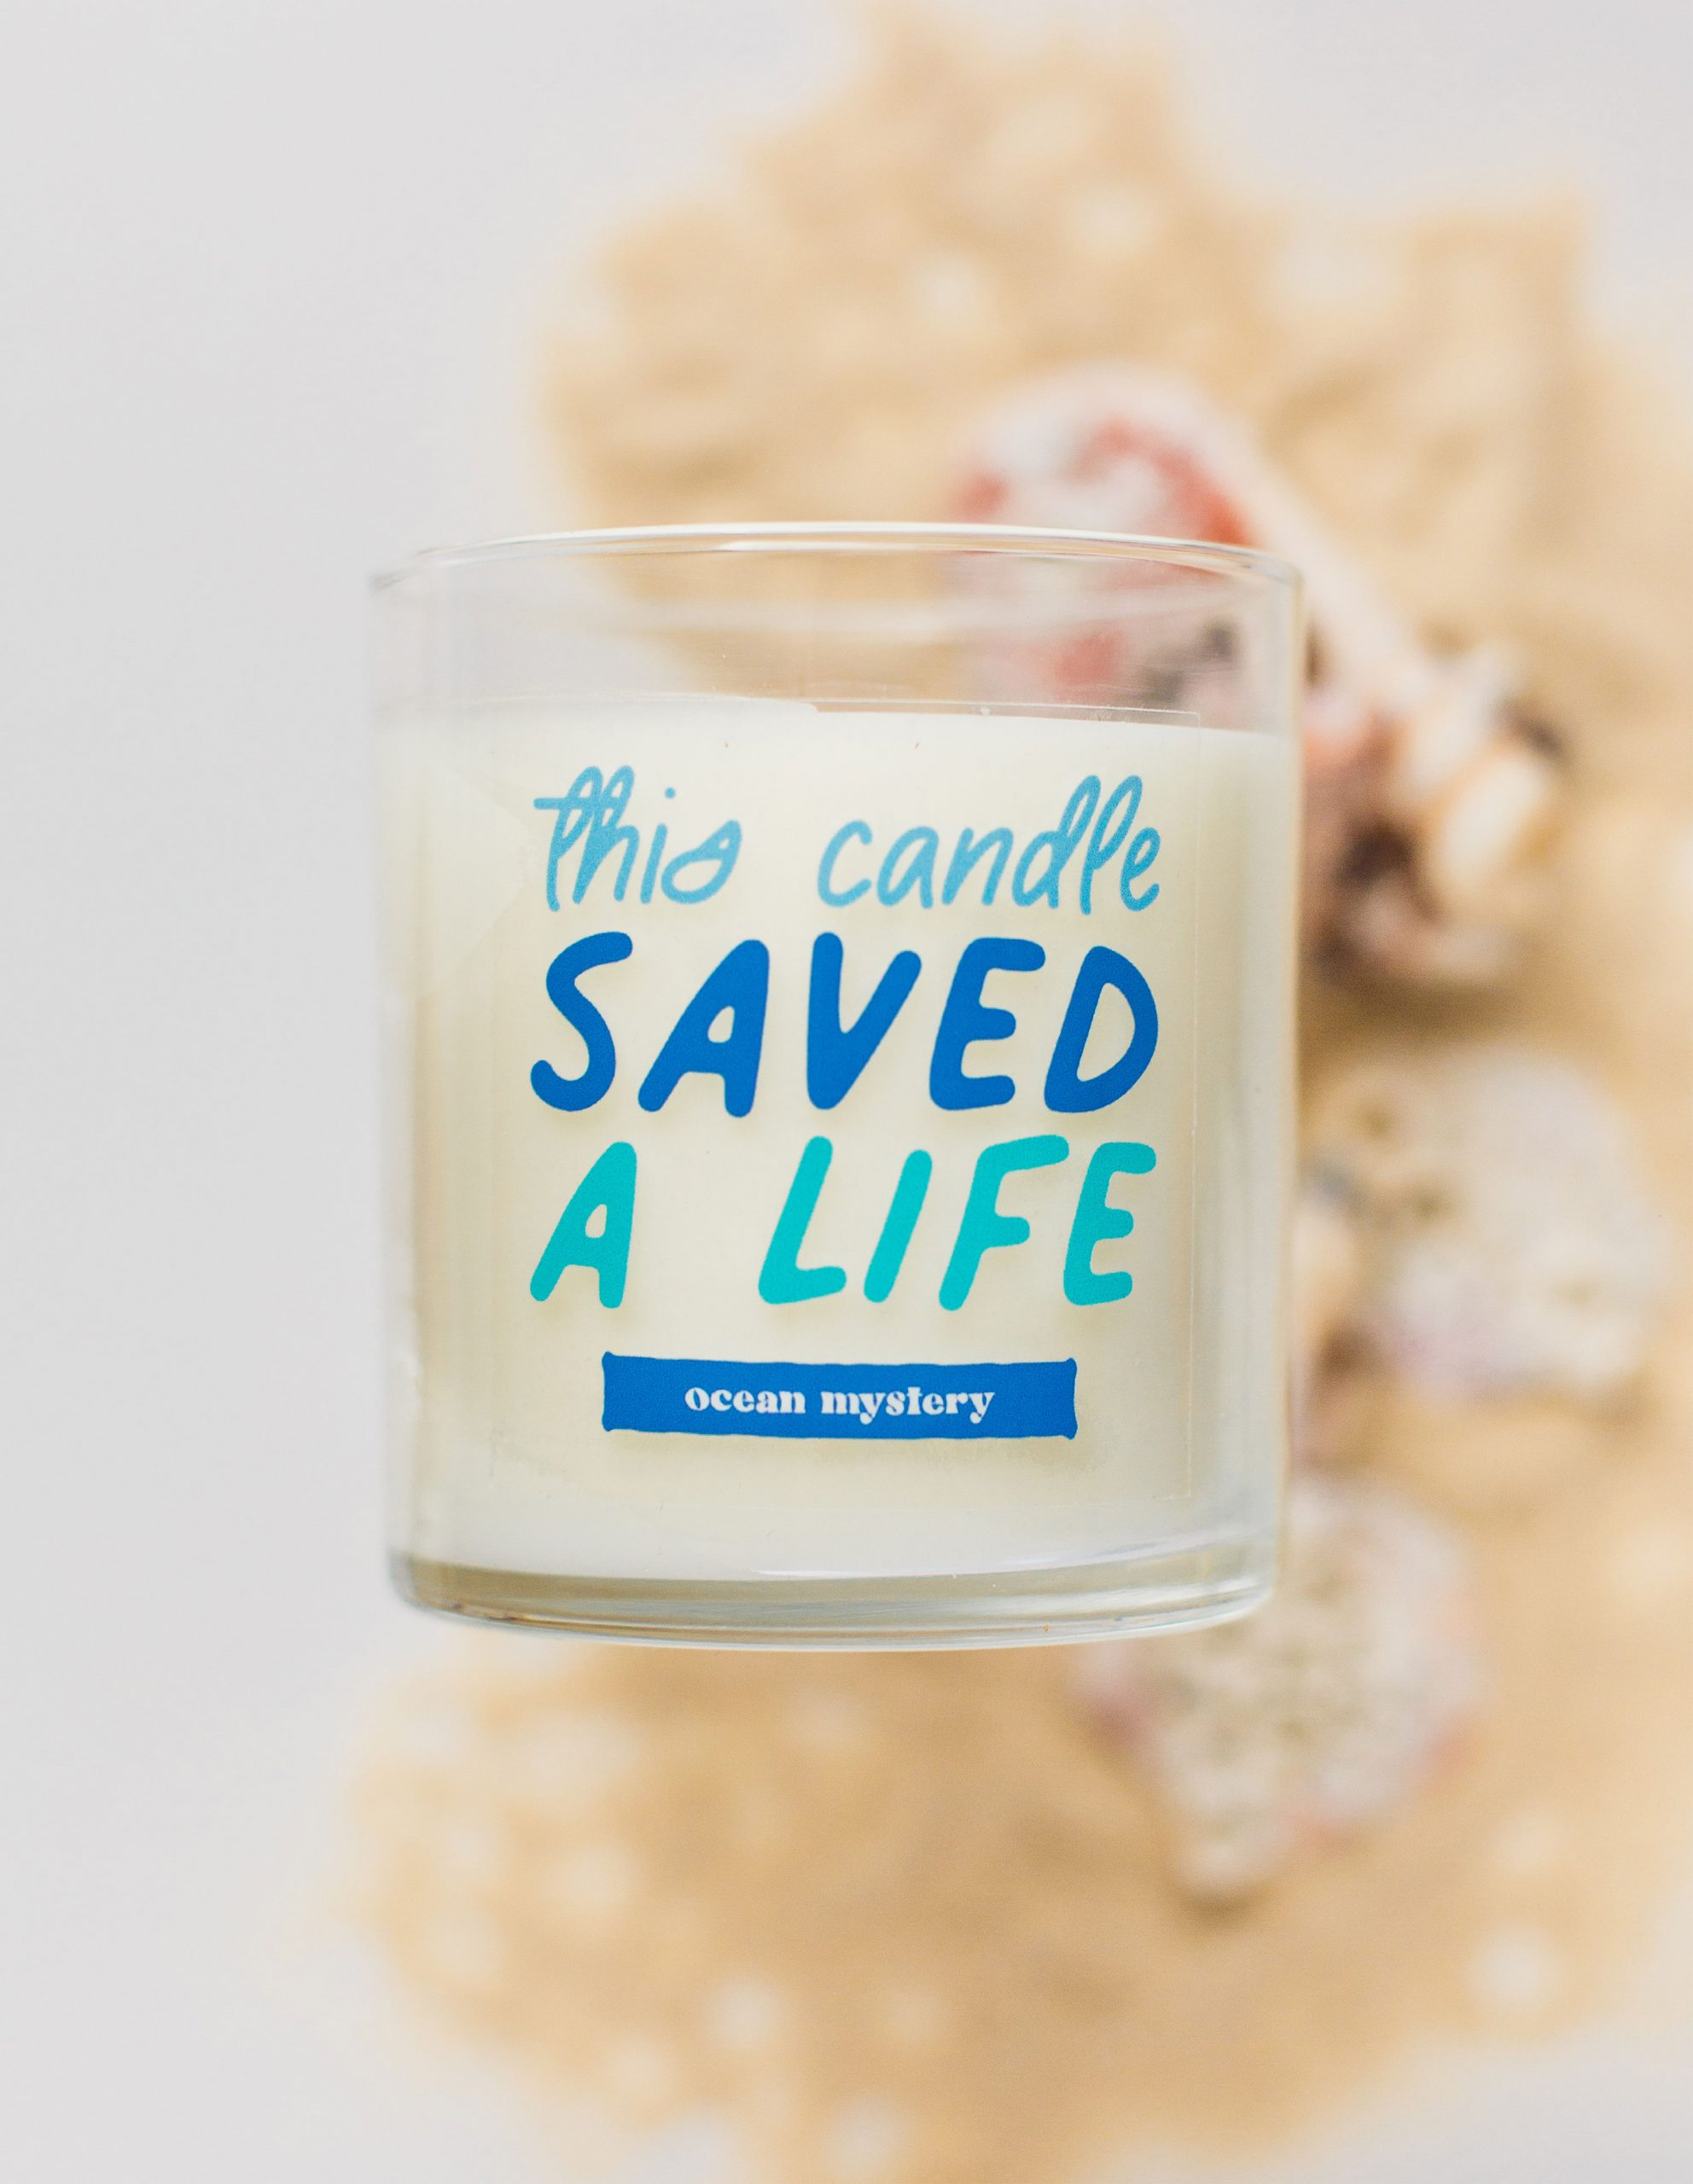 This Candle Saved A Life